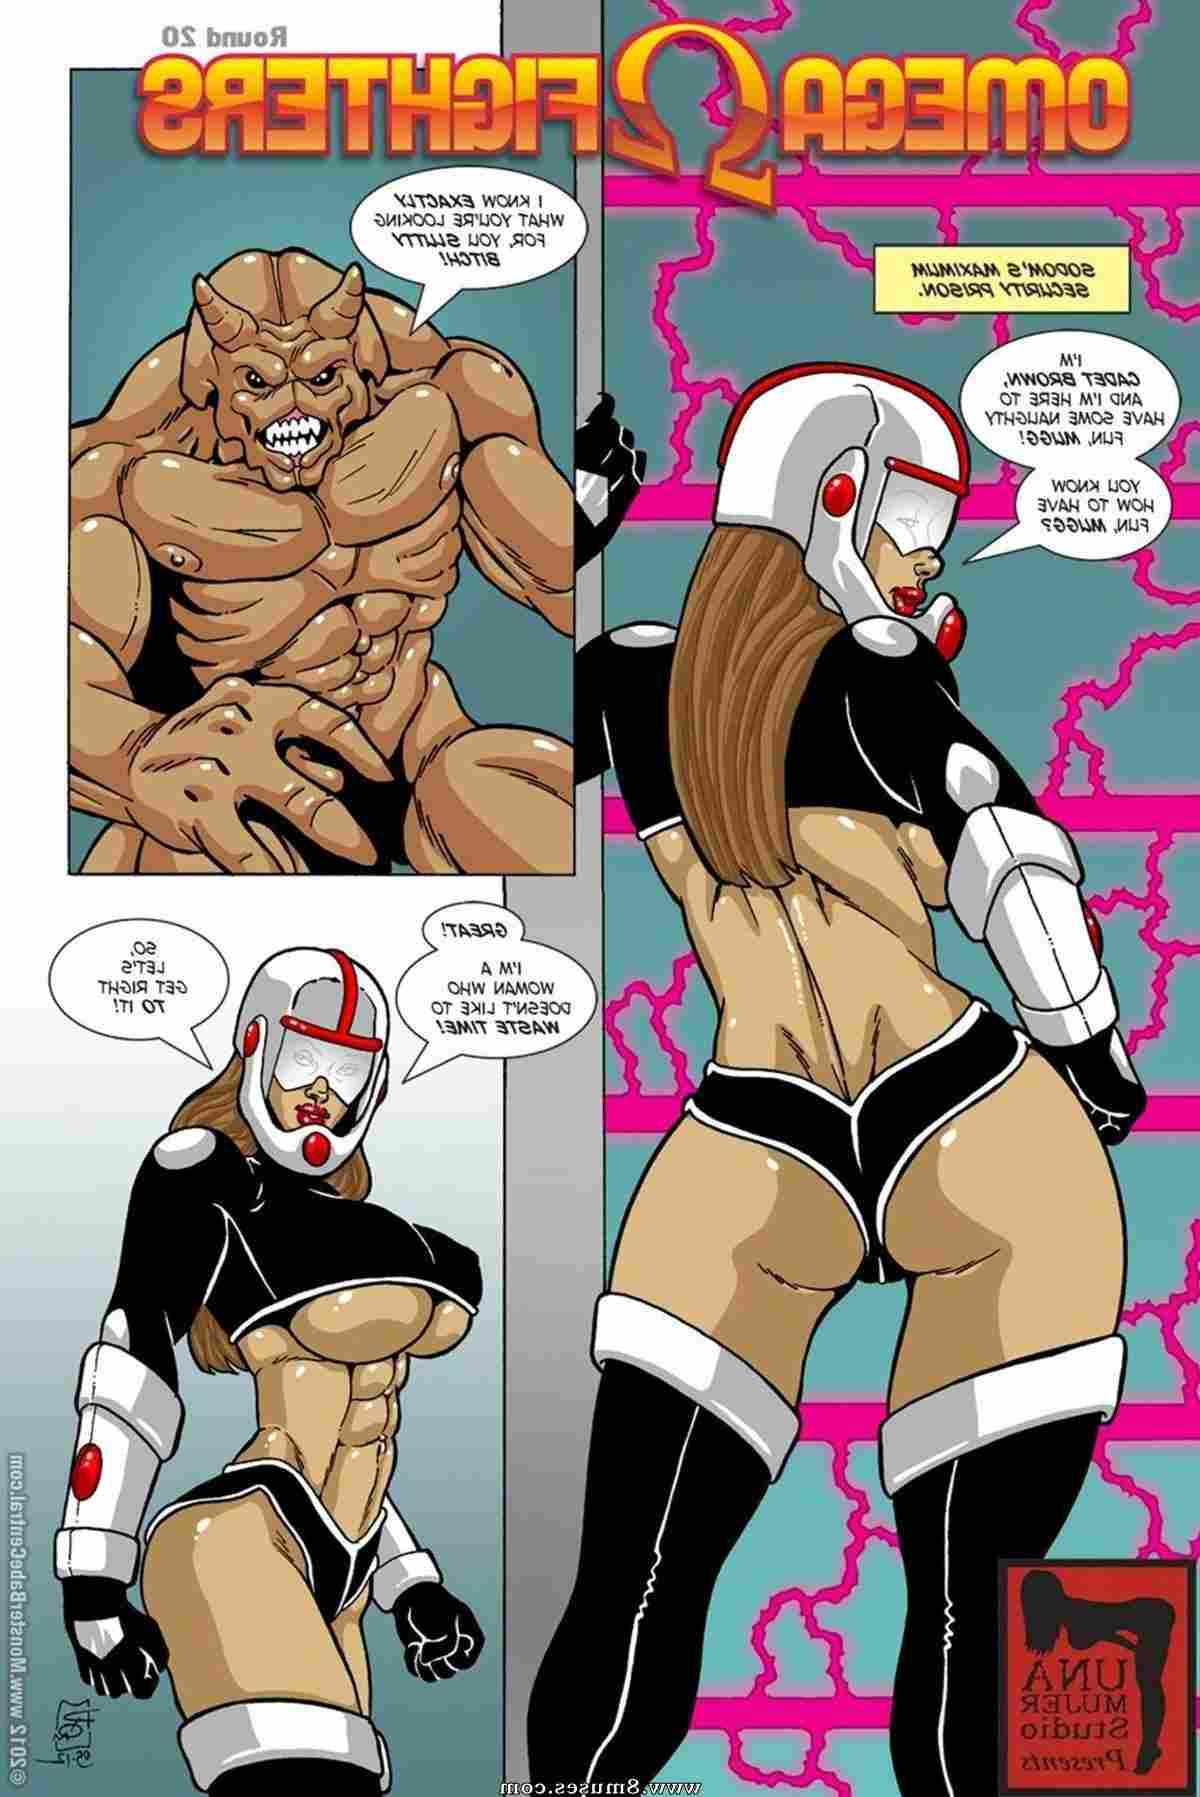 Central-Comics/Monster-Babe-Central/Omega-Fighters Omega_Fighters__8muses_-_Sex_and_Porn_Comics_96.jpg